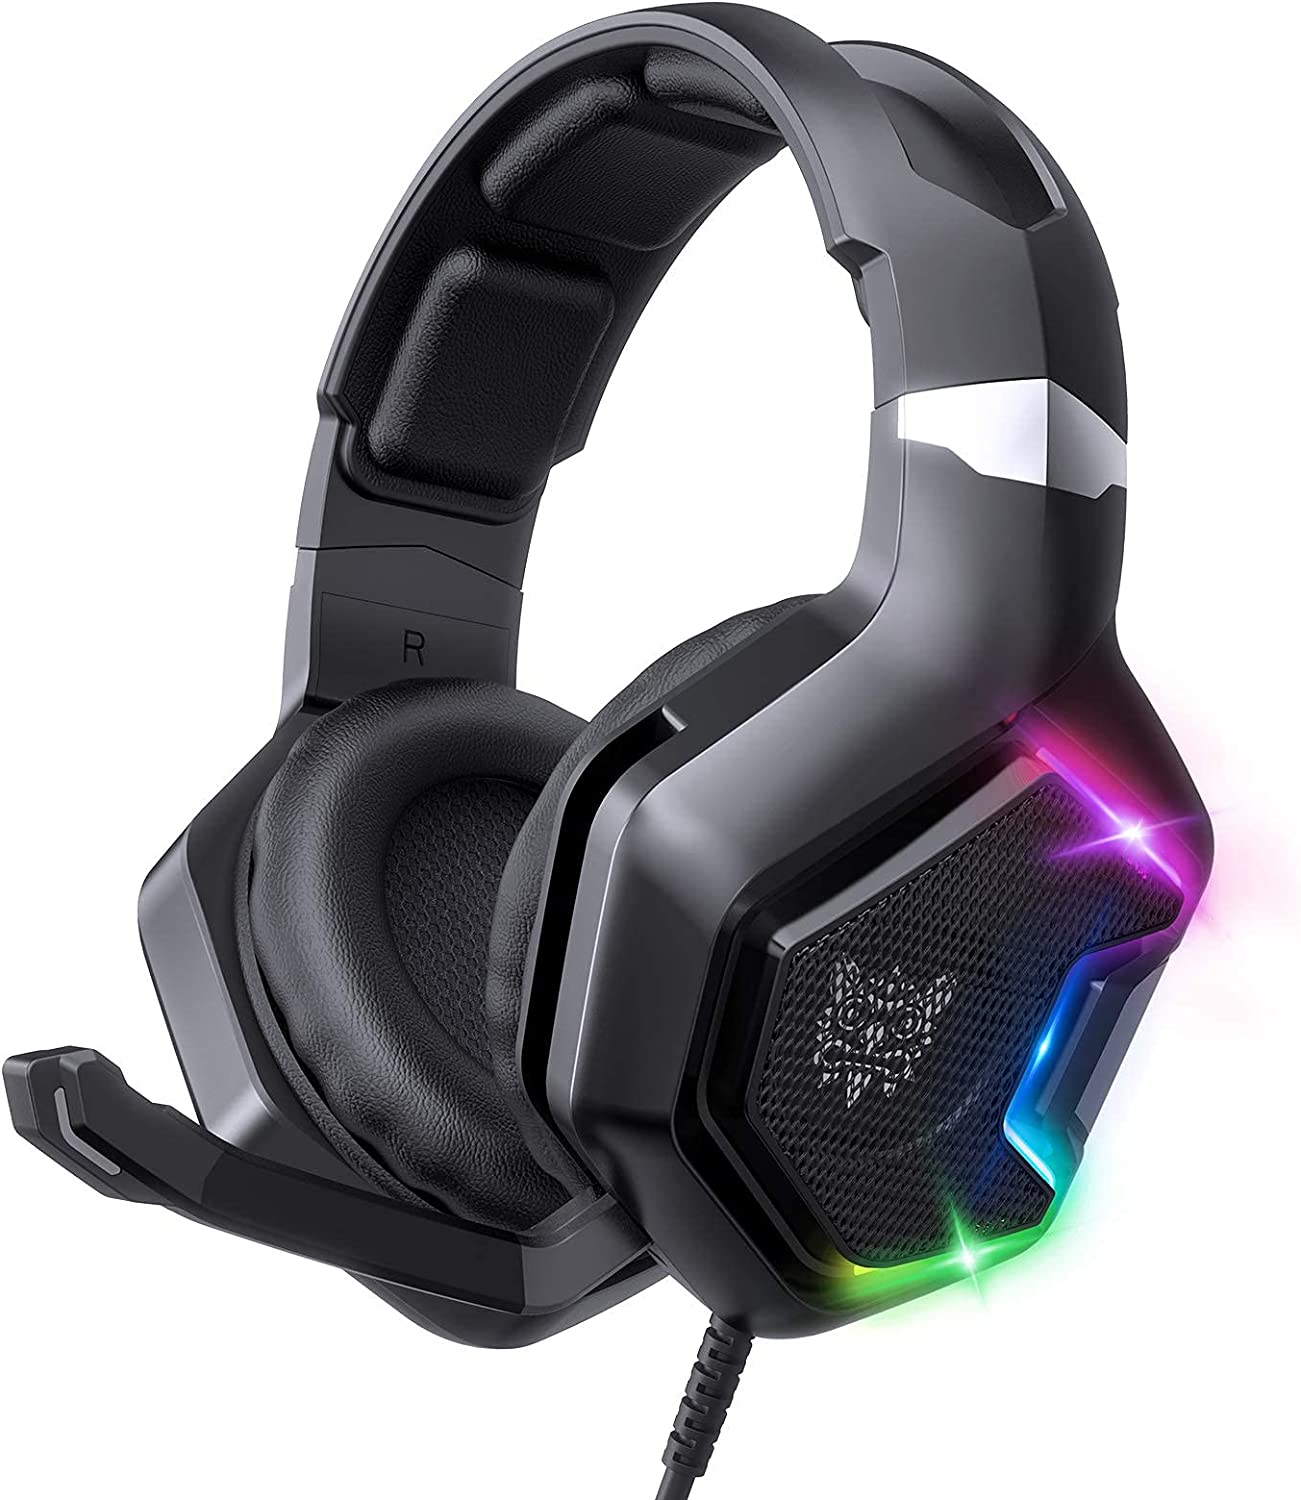 FEIYING Gaming Headset with Noise Canceling Mic RGB LED Light, 7.1 Surround Sound Over Ear Gaming Headphone for PS5 PS4, Laptops, PC, Phones